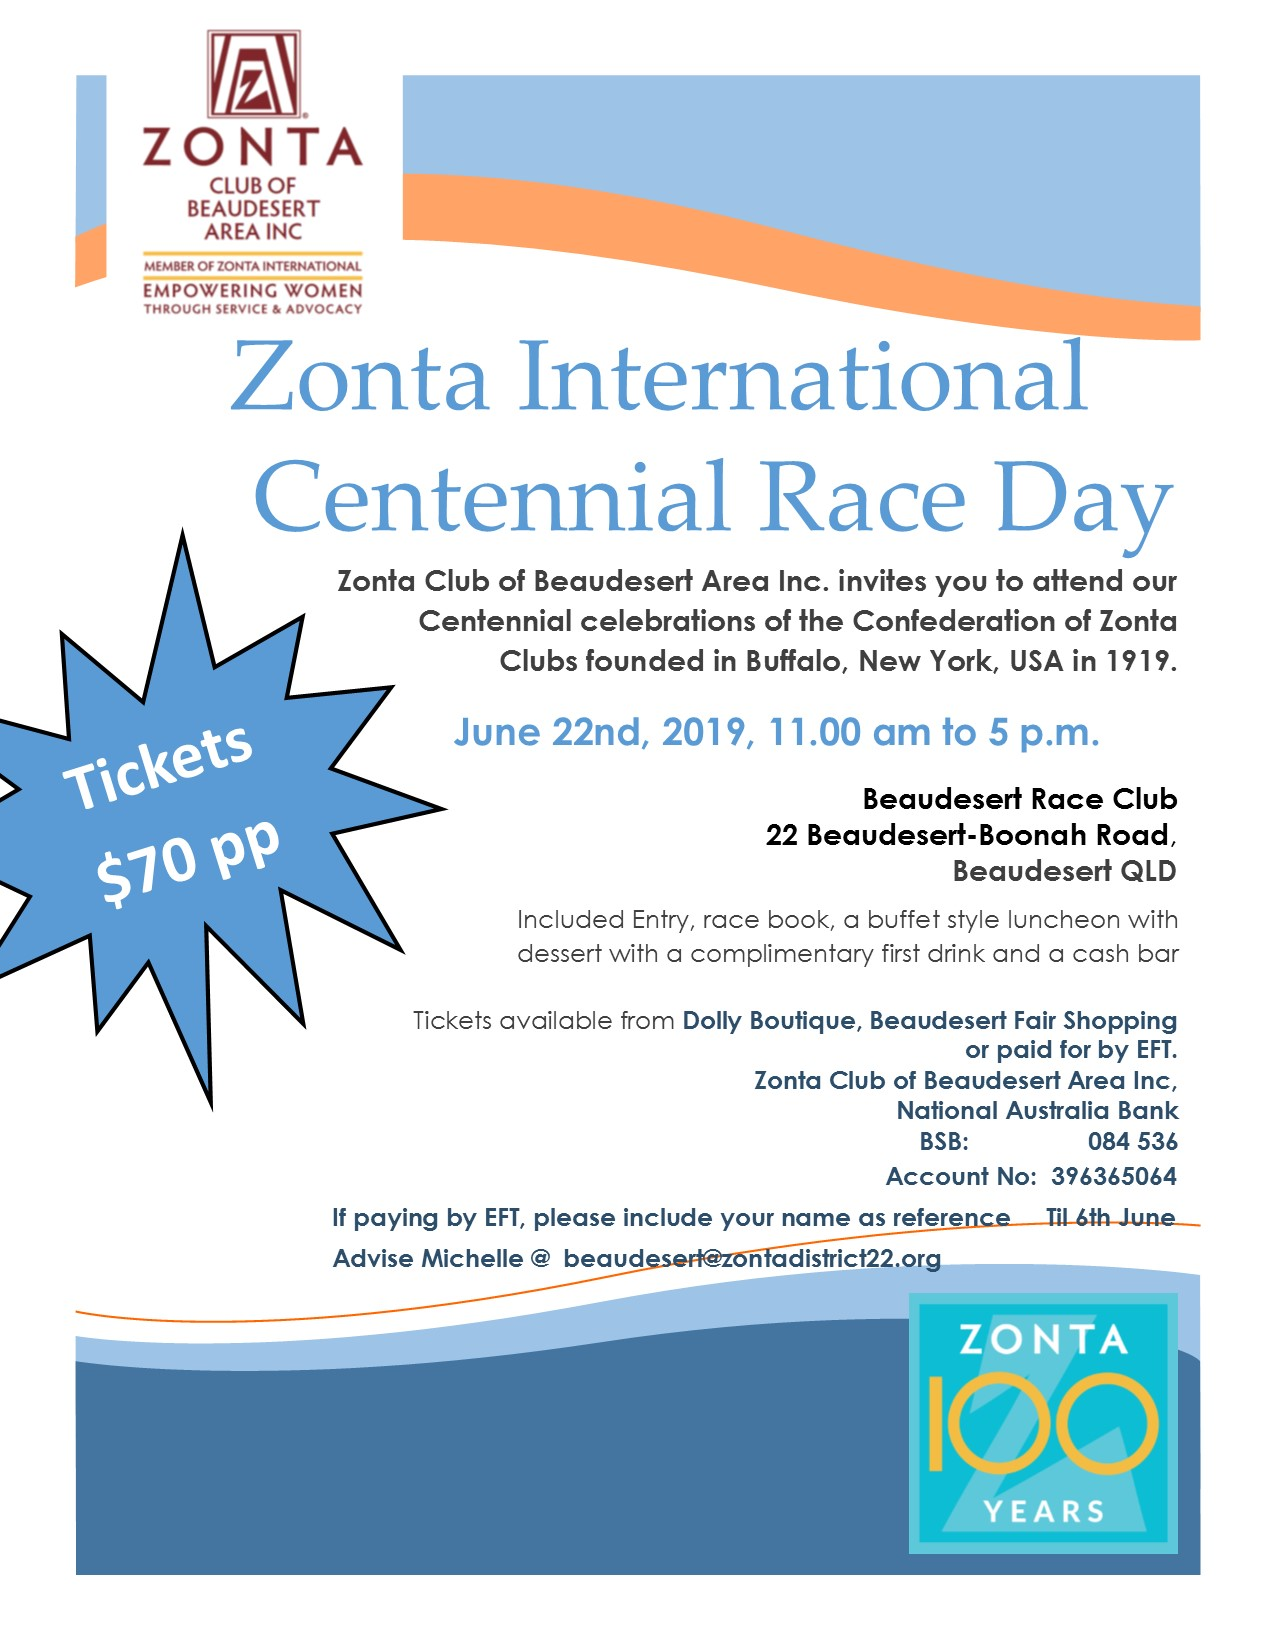 Zonta Club of Beaudesert Area Inc - Zonta International Centennial Race Day @ Beaudesert Race Club | Beaudesert | Queensland | Australia